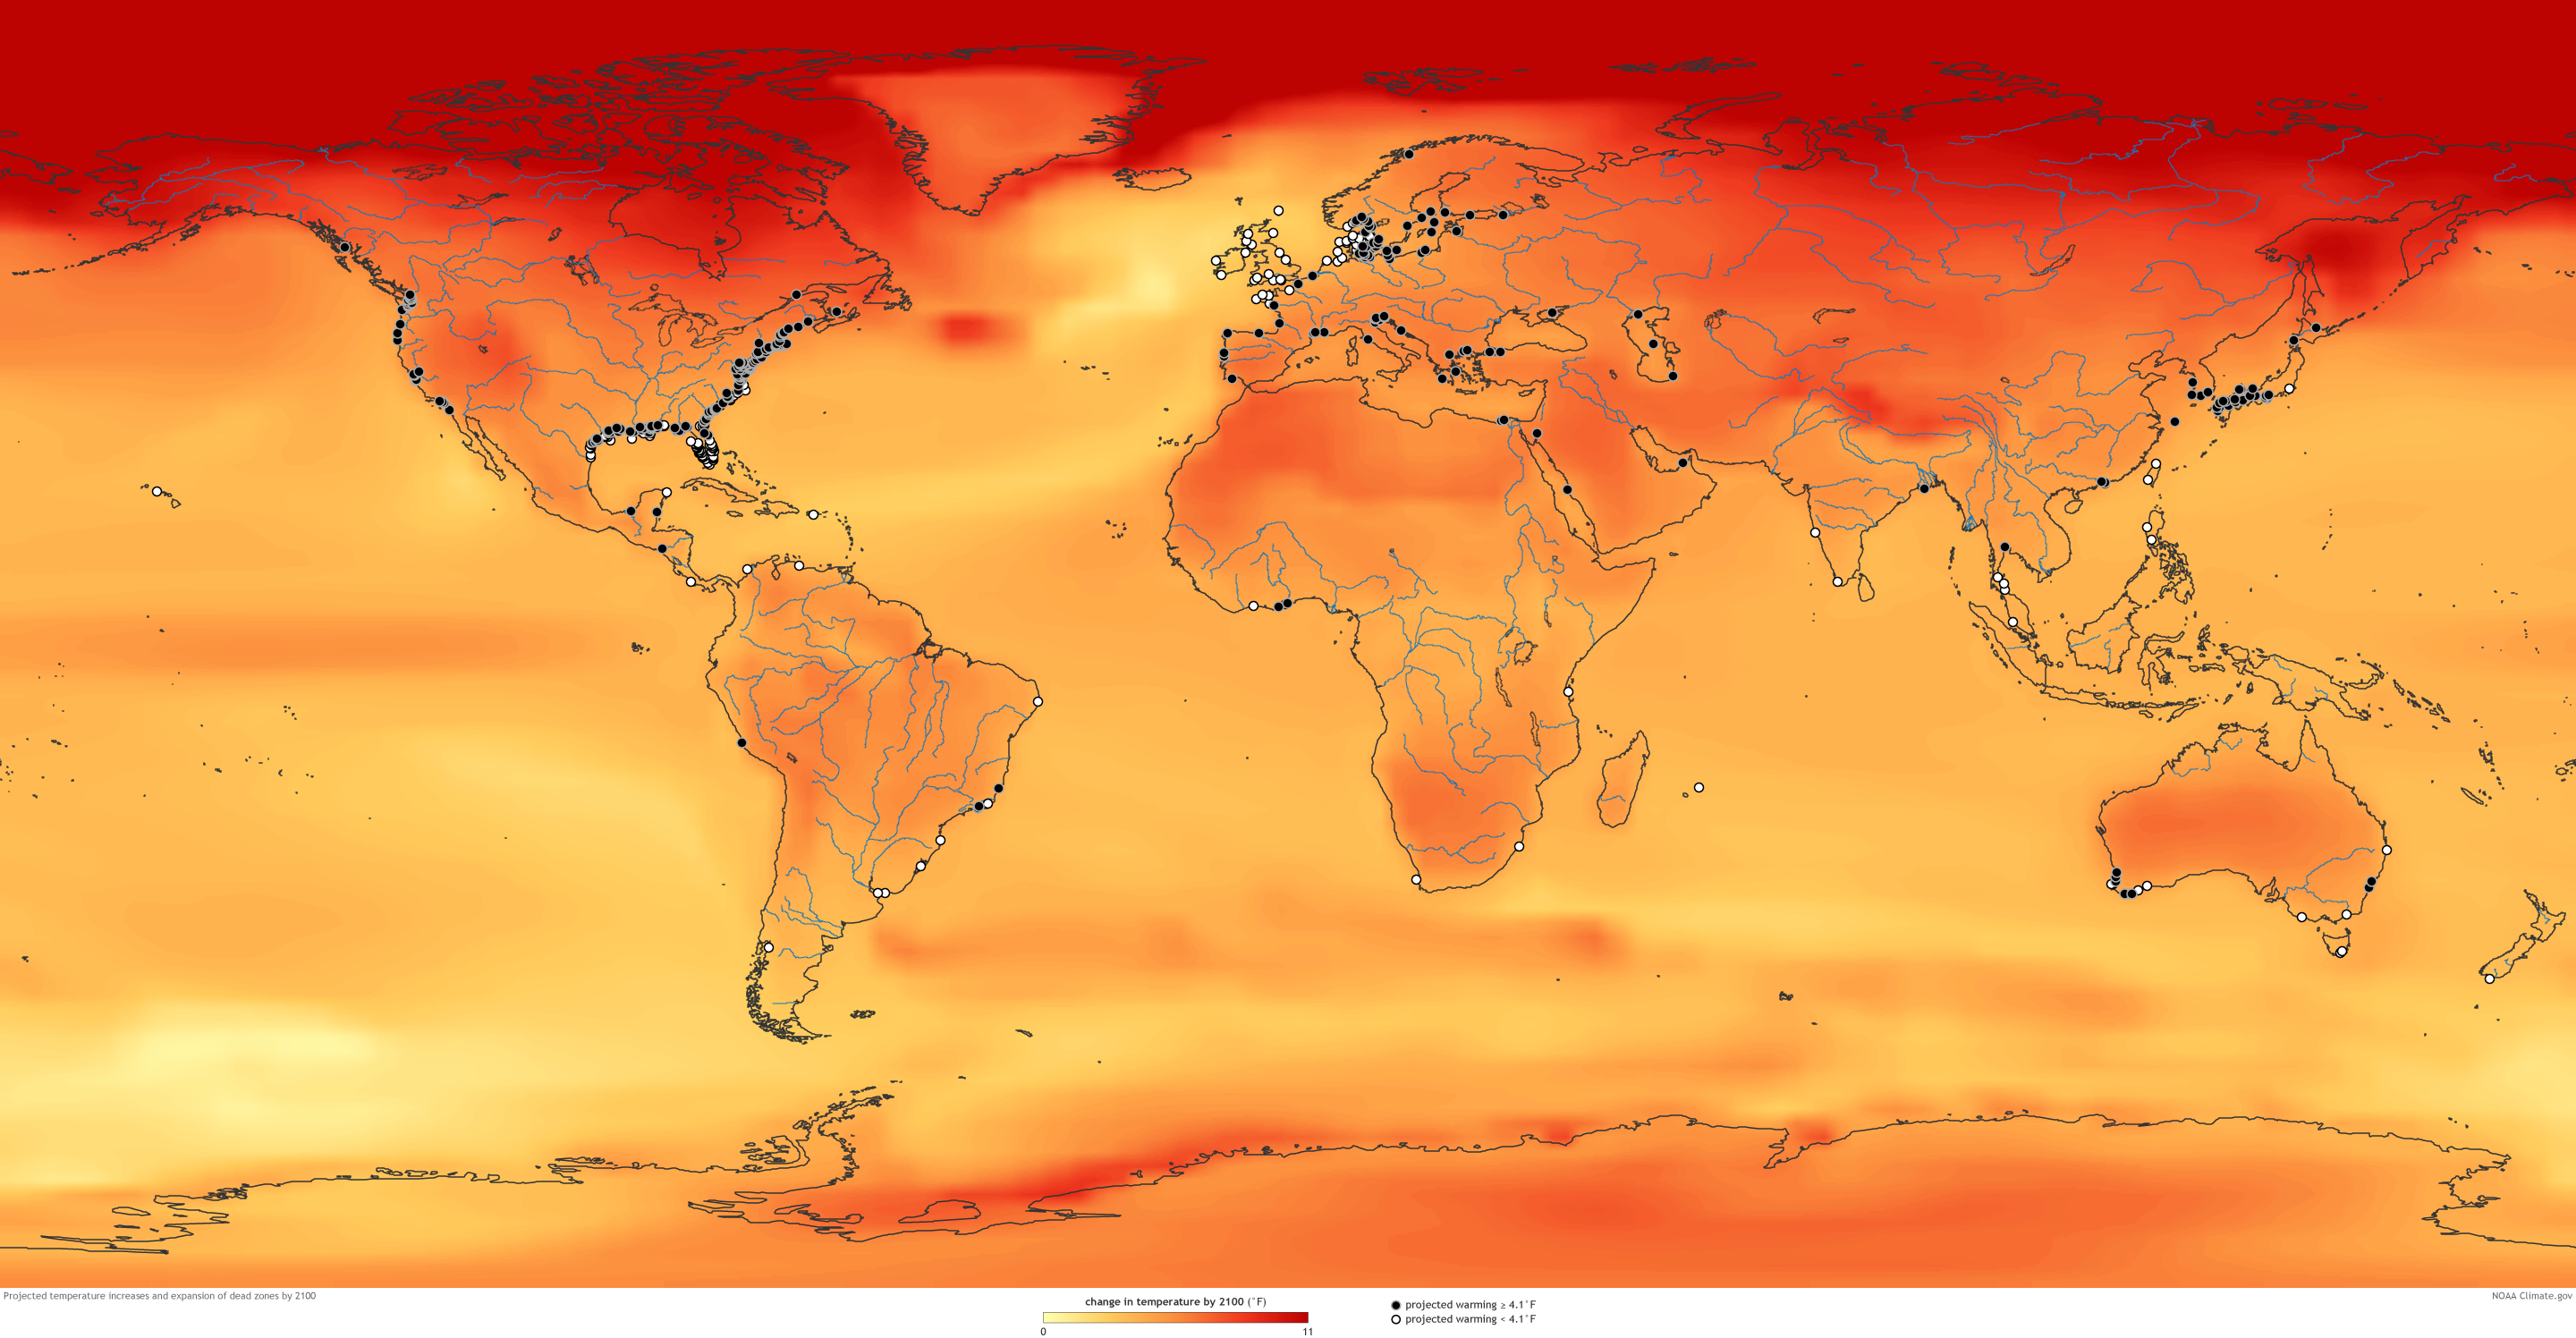 Climate Change Likely To Worsen US And Global Dead Zones NOAA - Us climate map zone images